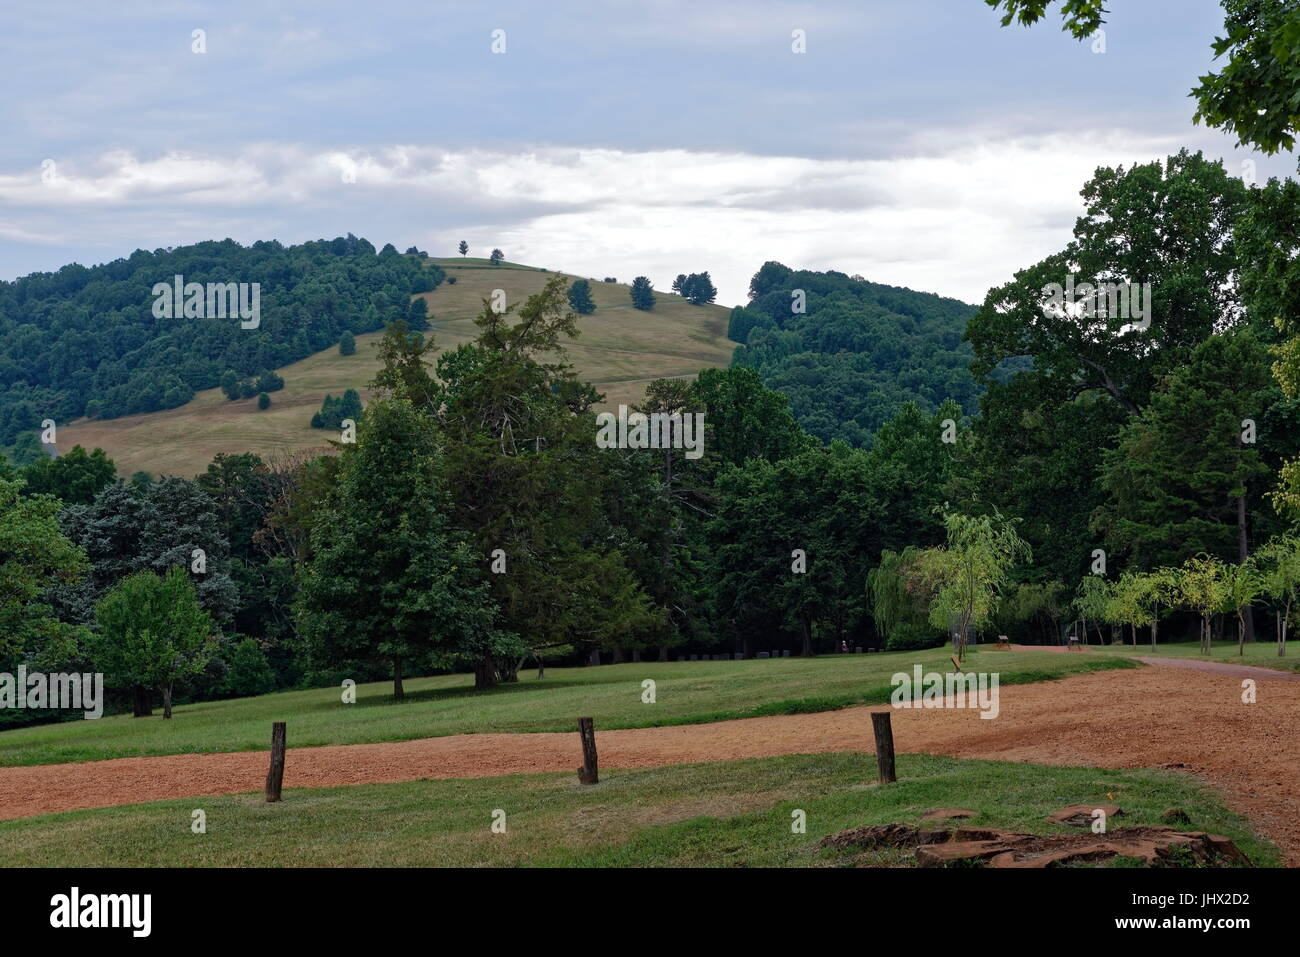 Grounds and Gardens, Monticello, Virginia - Stock Image